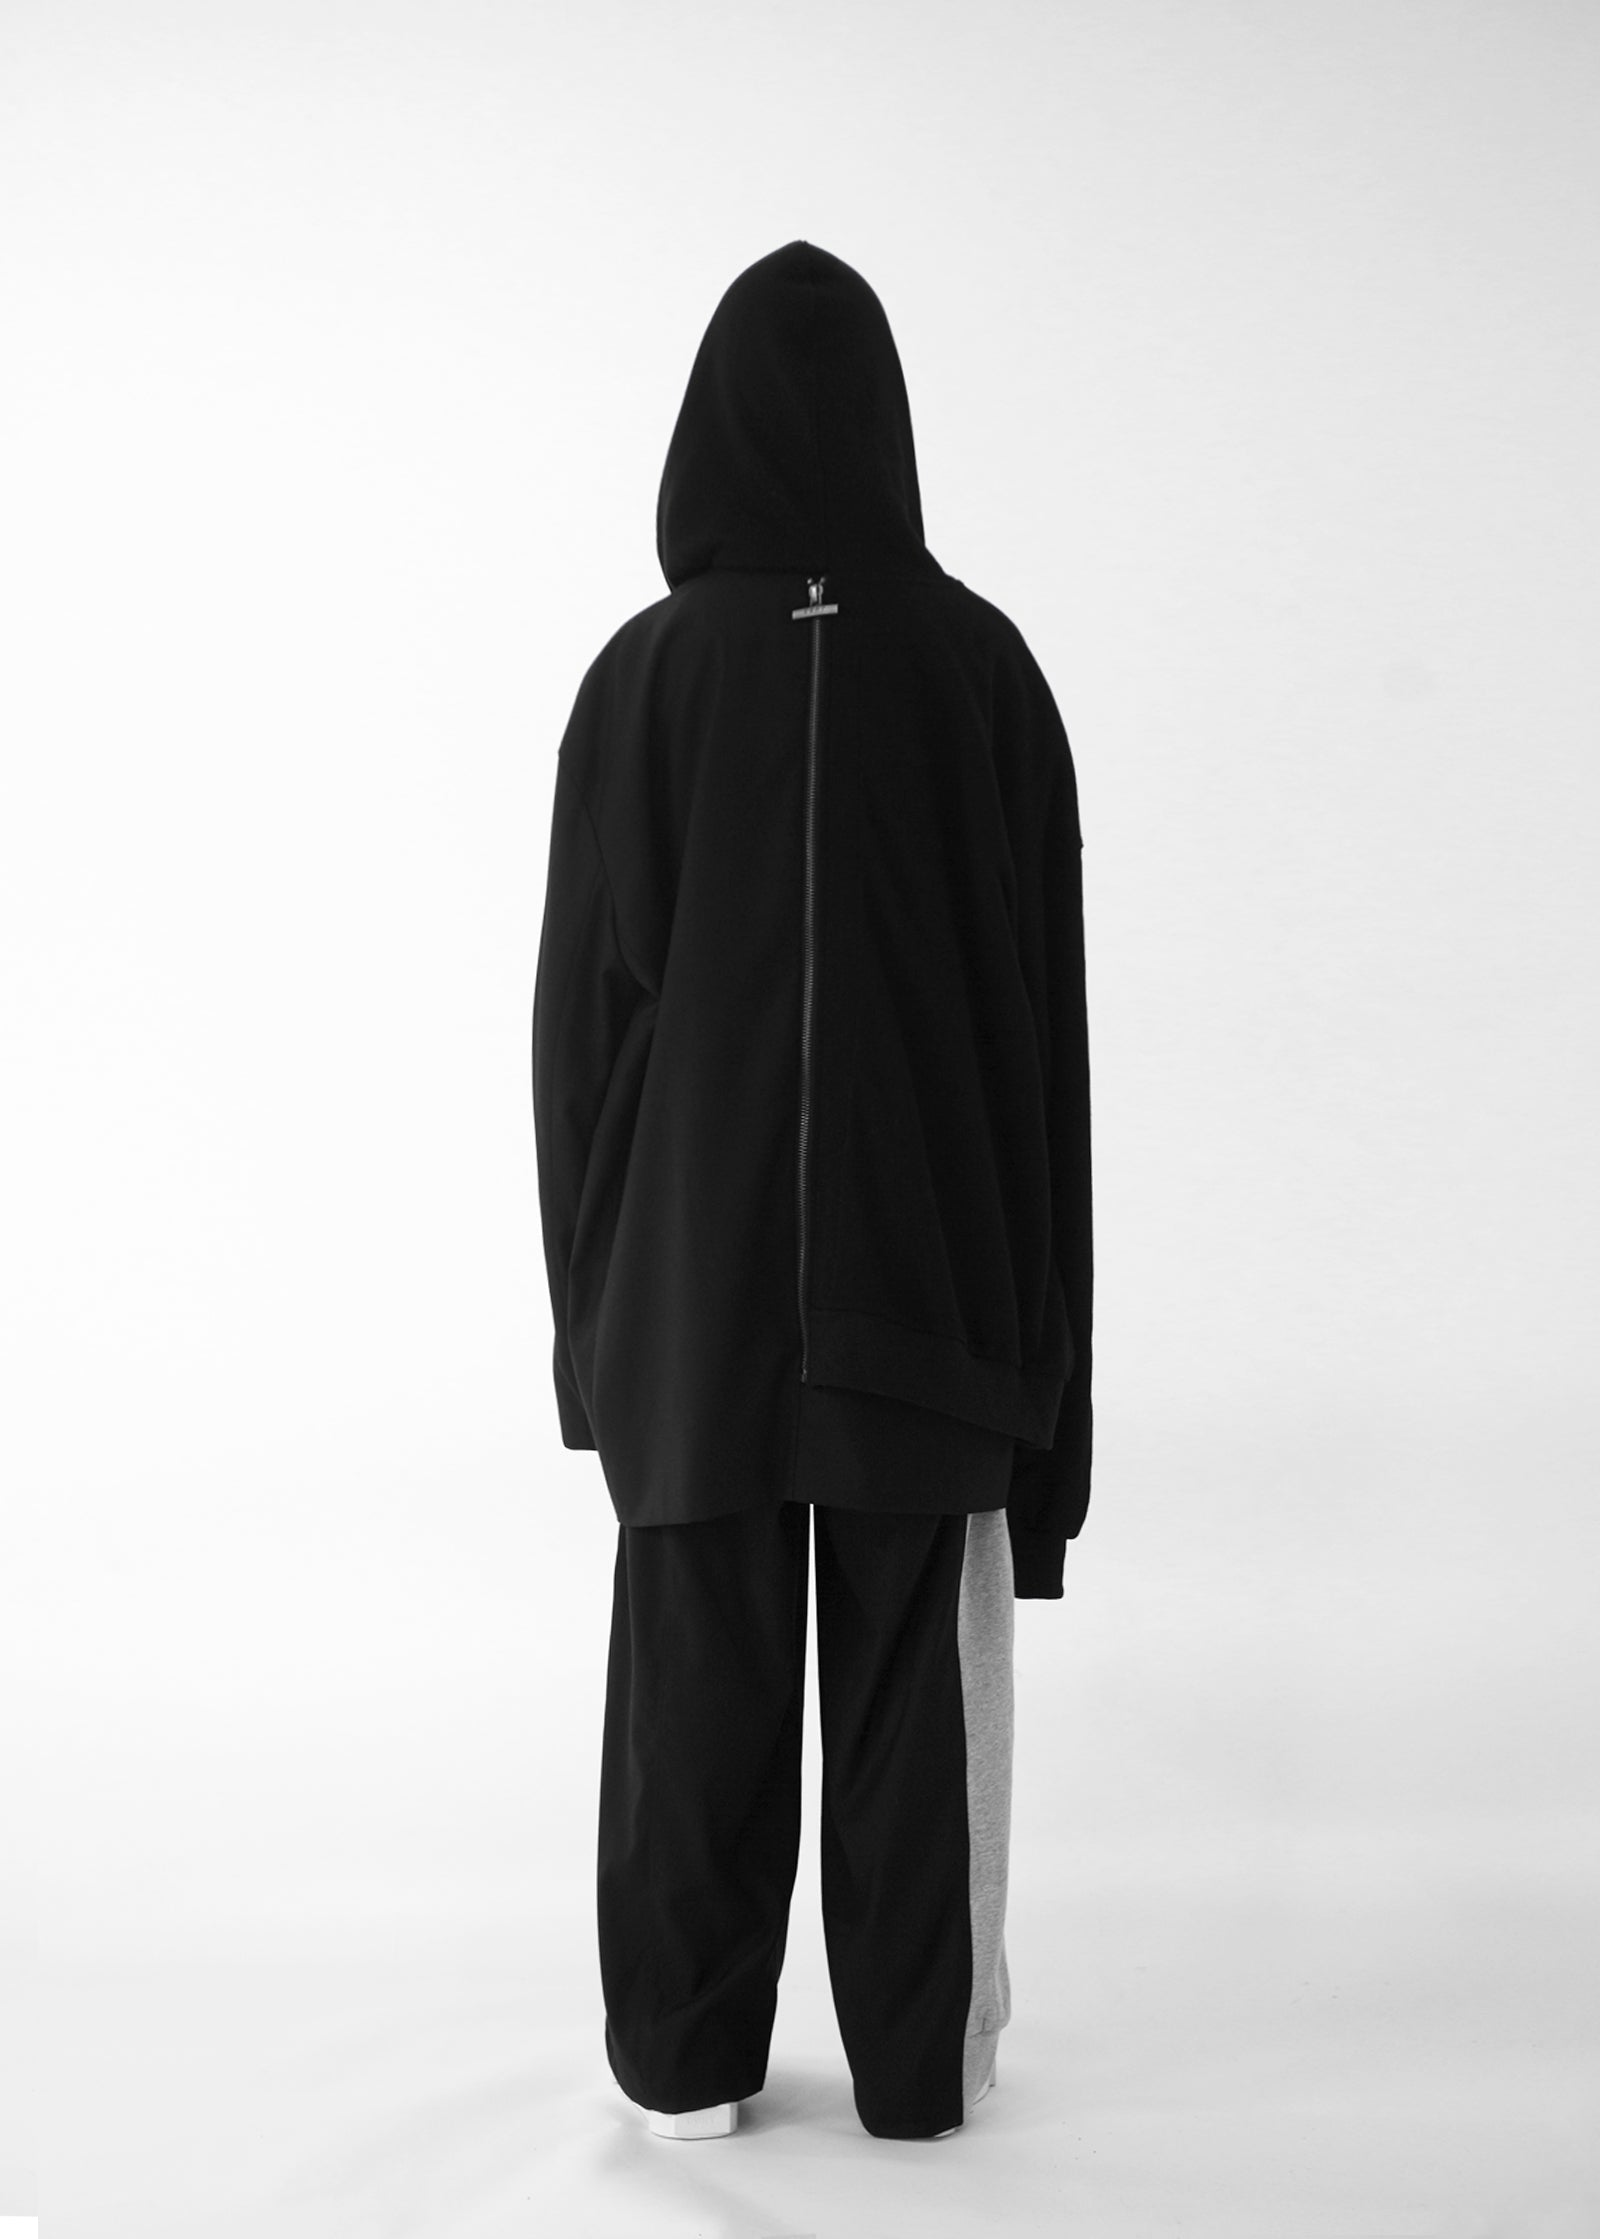 Copy of CGNY 2019 S/S Hybrid Oversized Hoodie Jacket (Black/Black) - CGNY